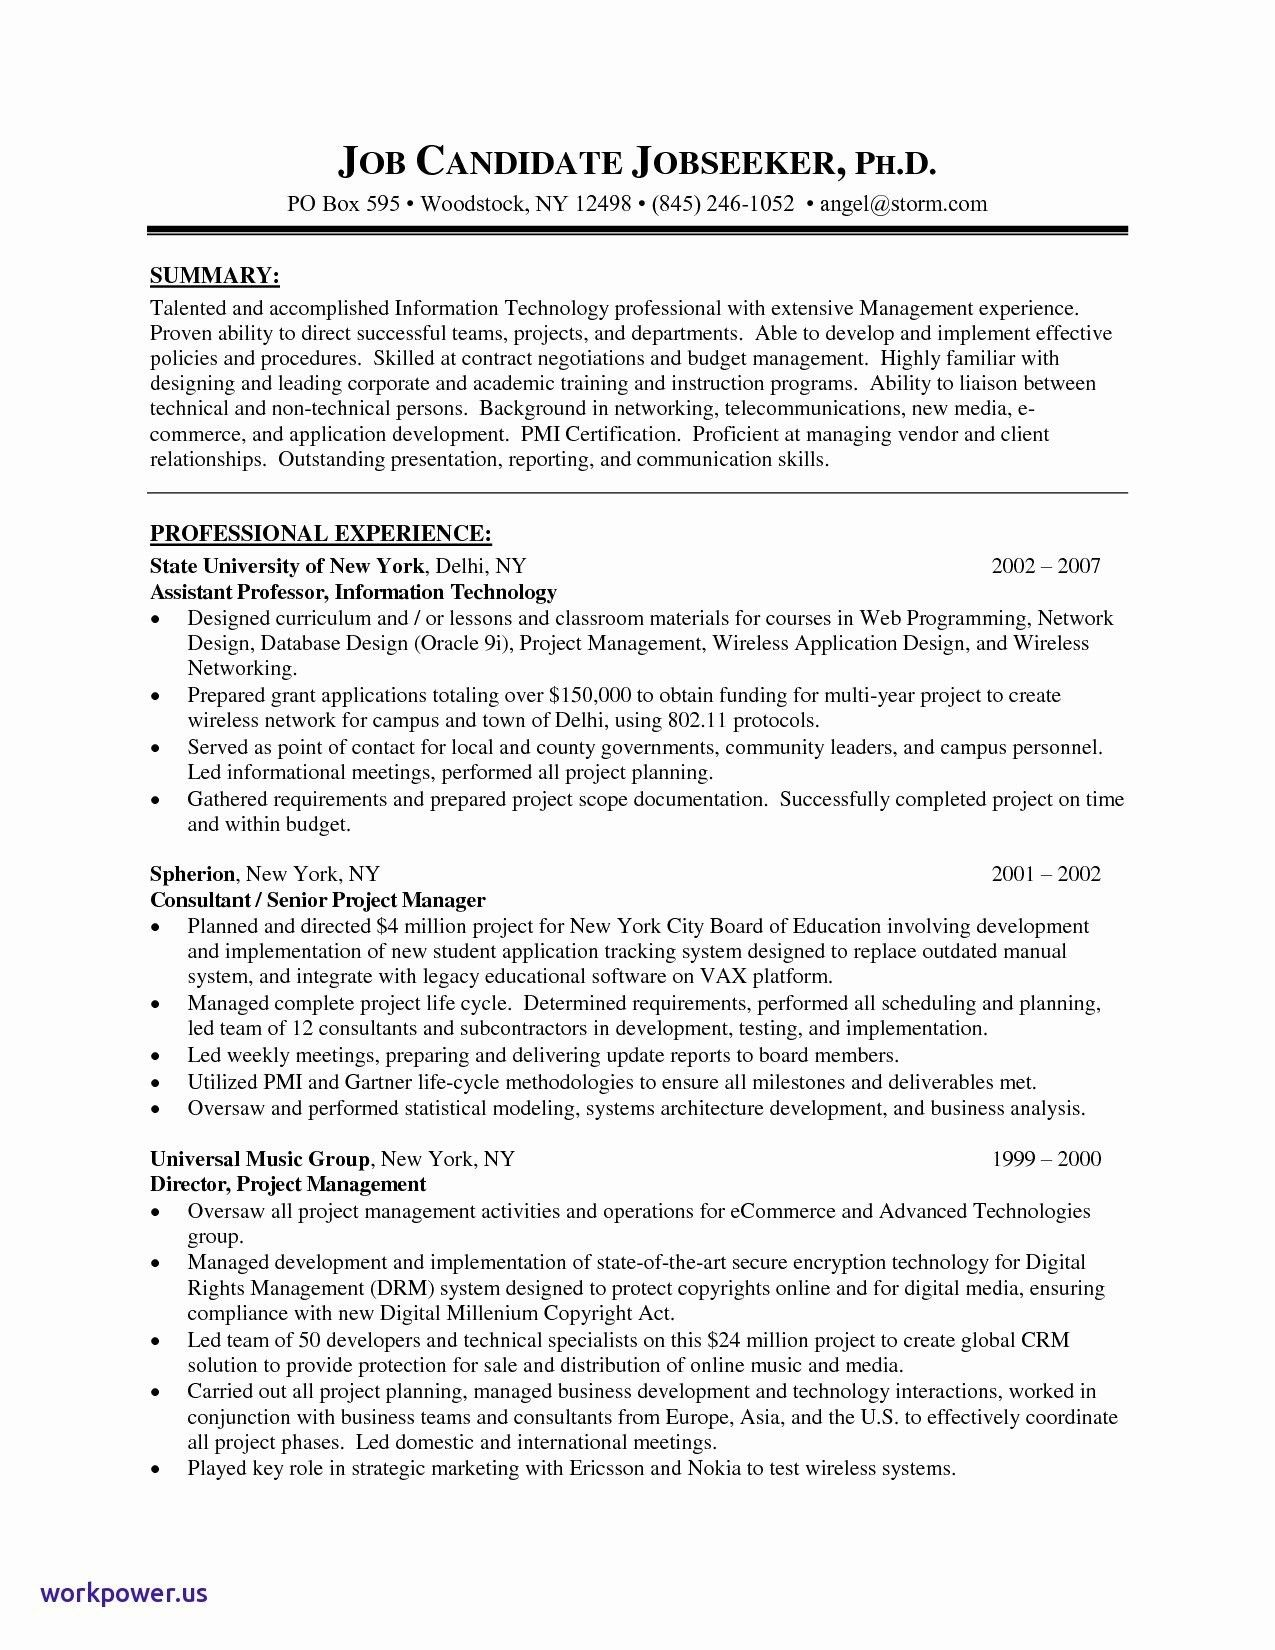 cv template tamu resume examples, project manager pharmacist modern free fancy